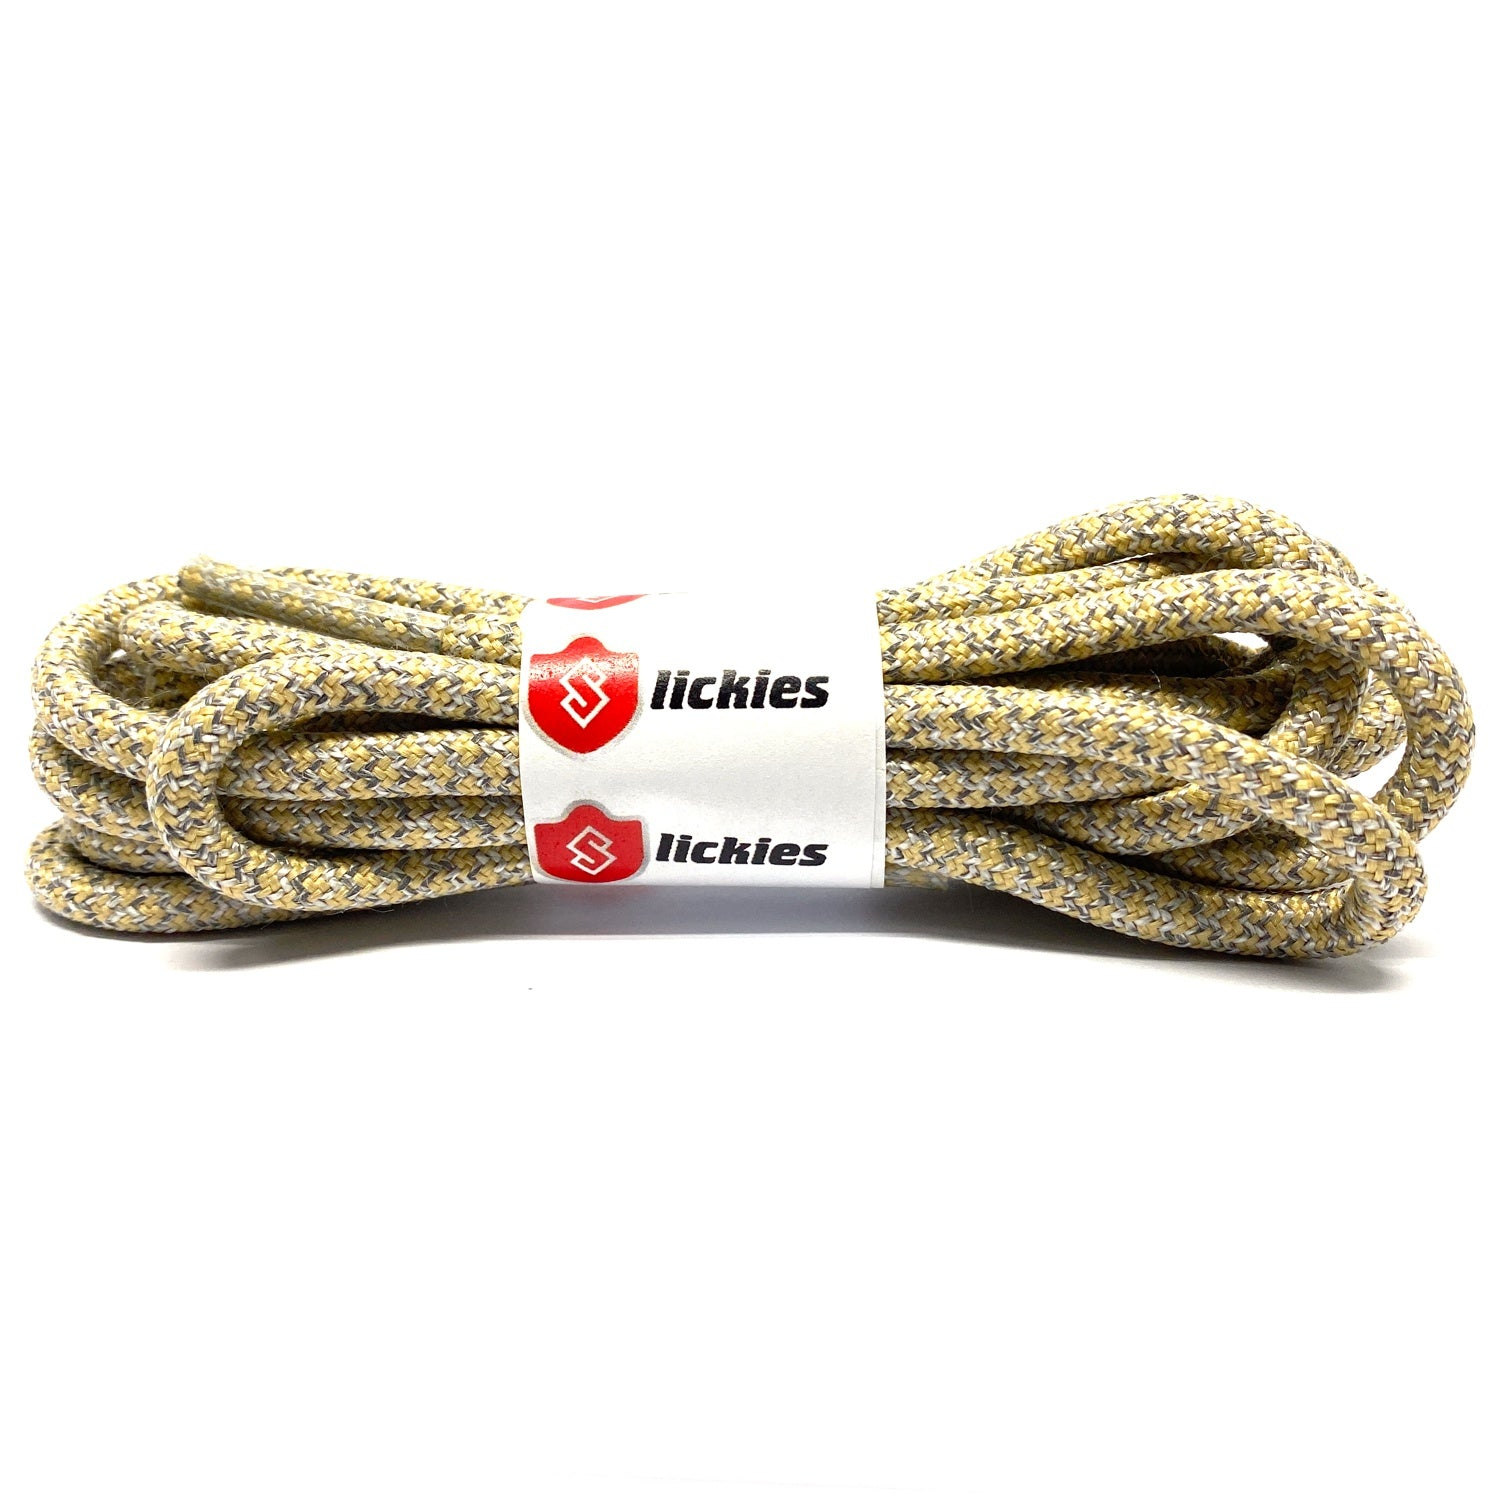 YEEZY 3M - 3M Reflective Rope Laces V2 - Abez / Natural Brown For Yeezy Boost 350 V2 Abez / Natural